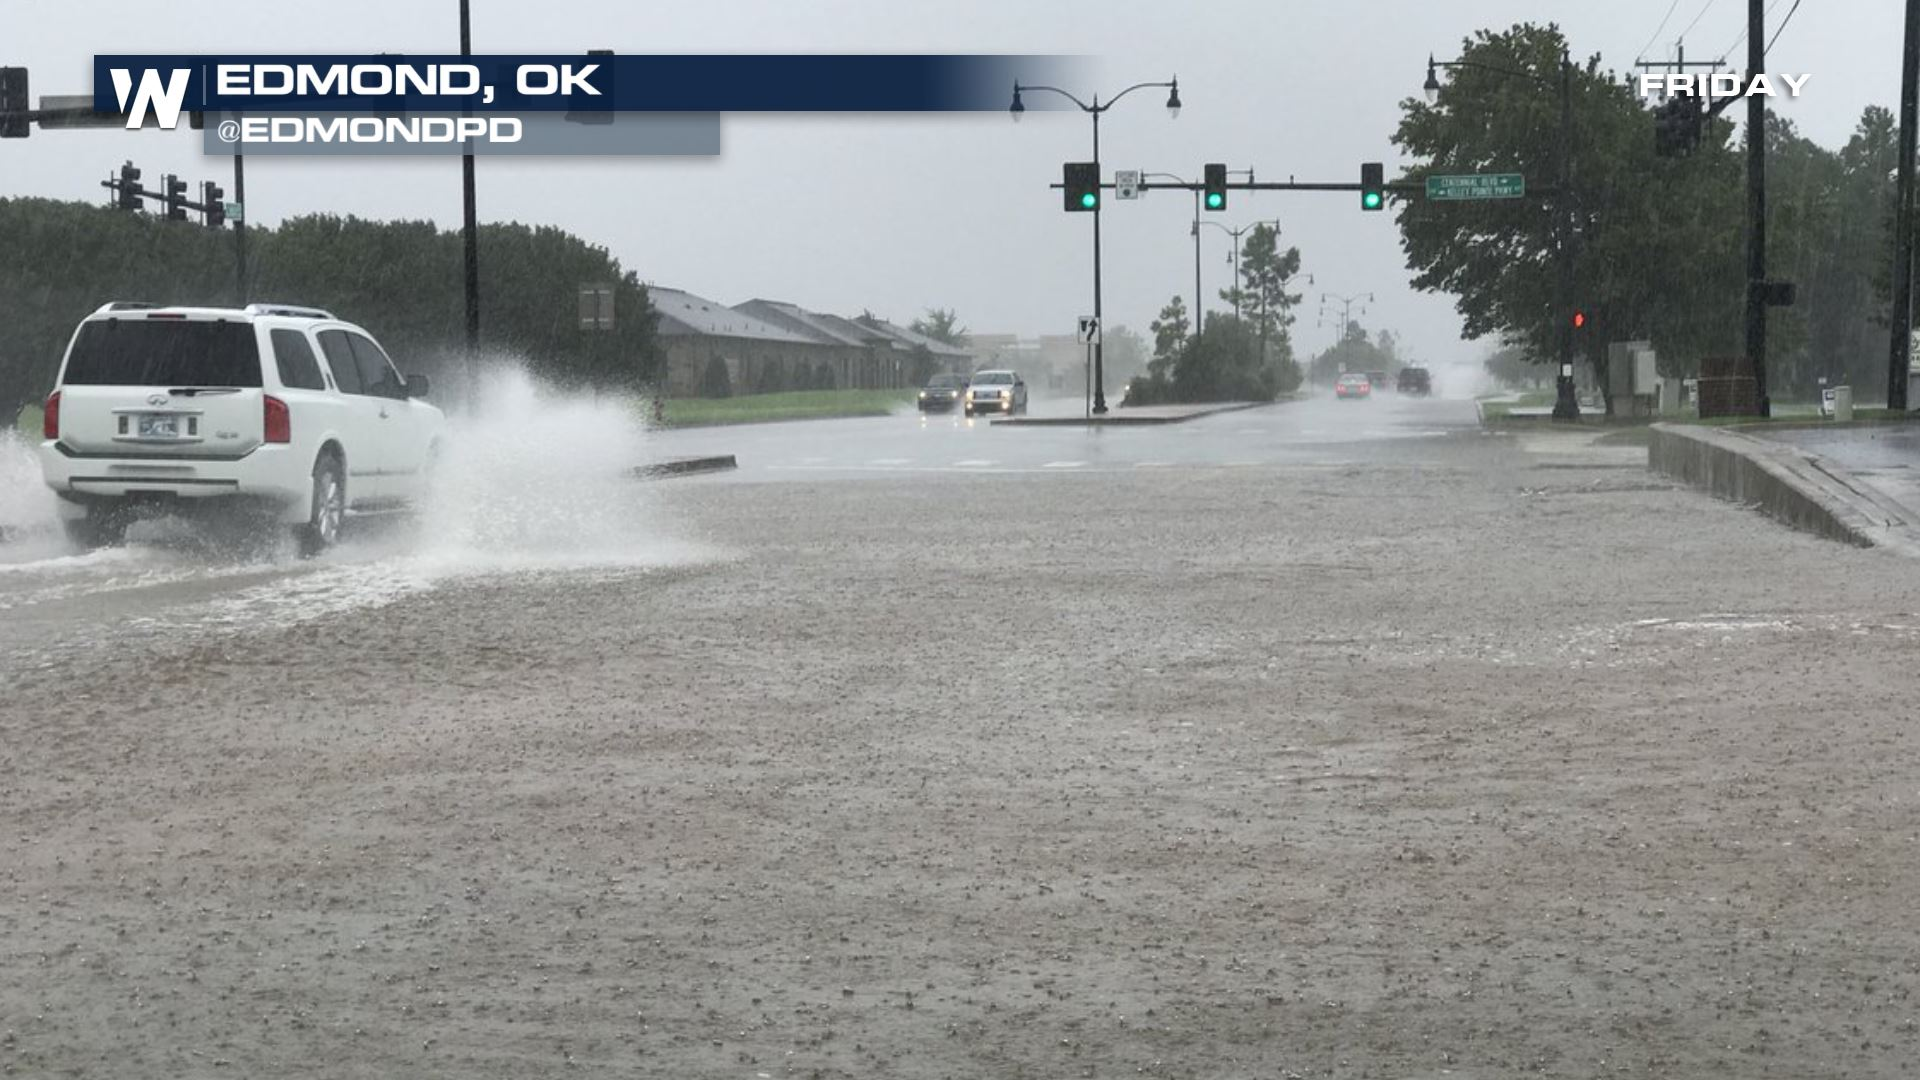 Flood Emergency, Water Rescues Sweep Across Oklahoma